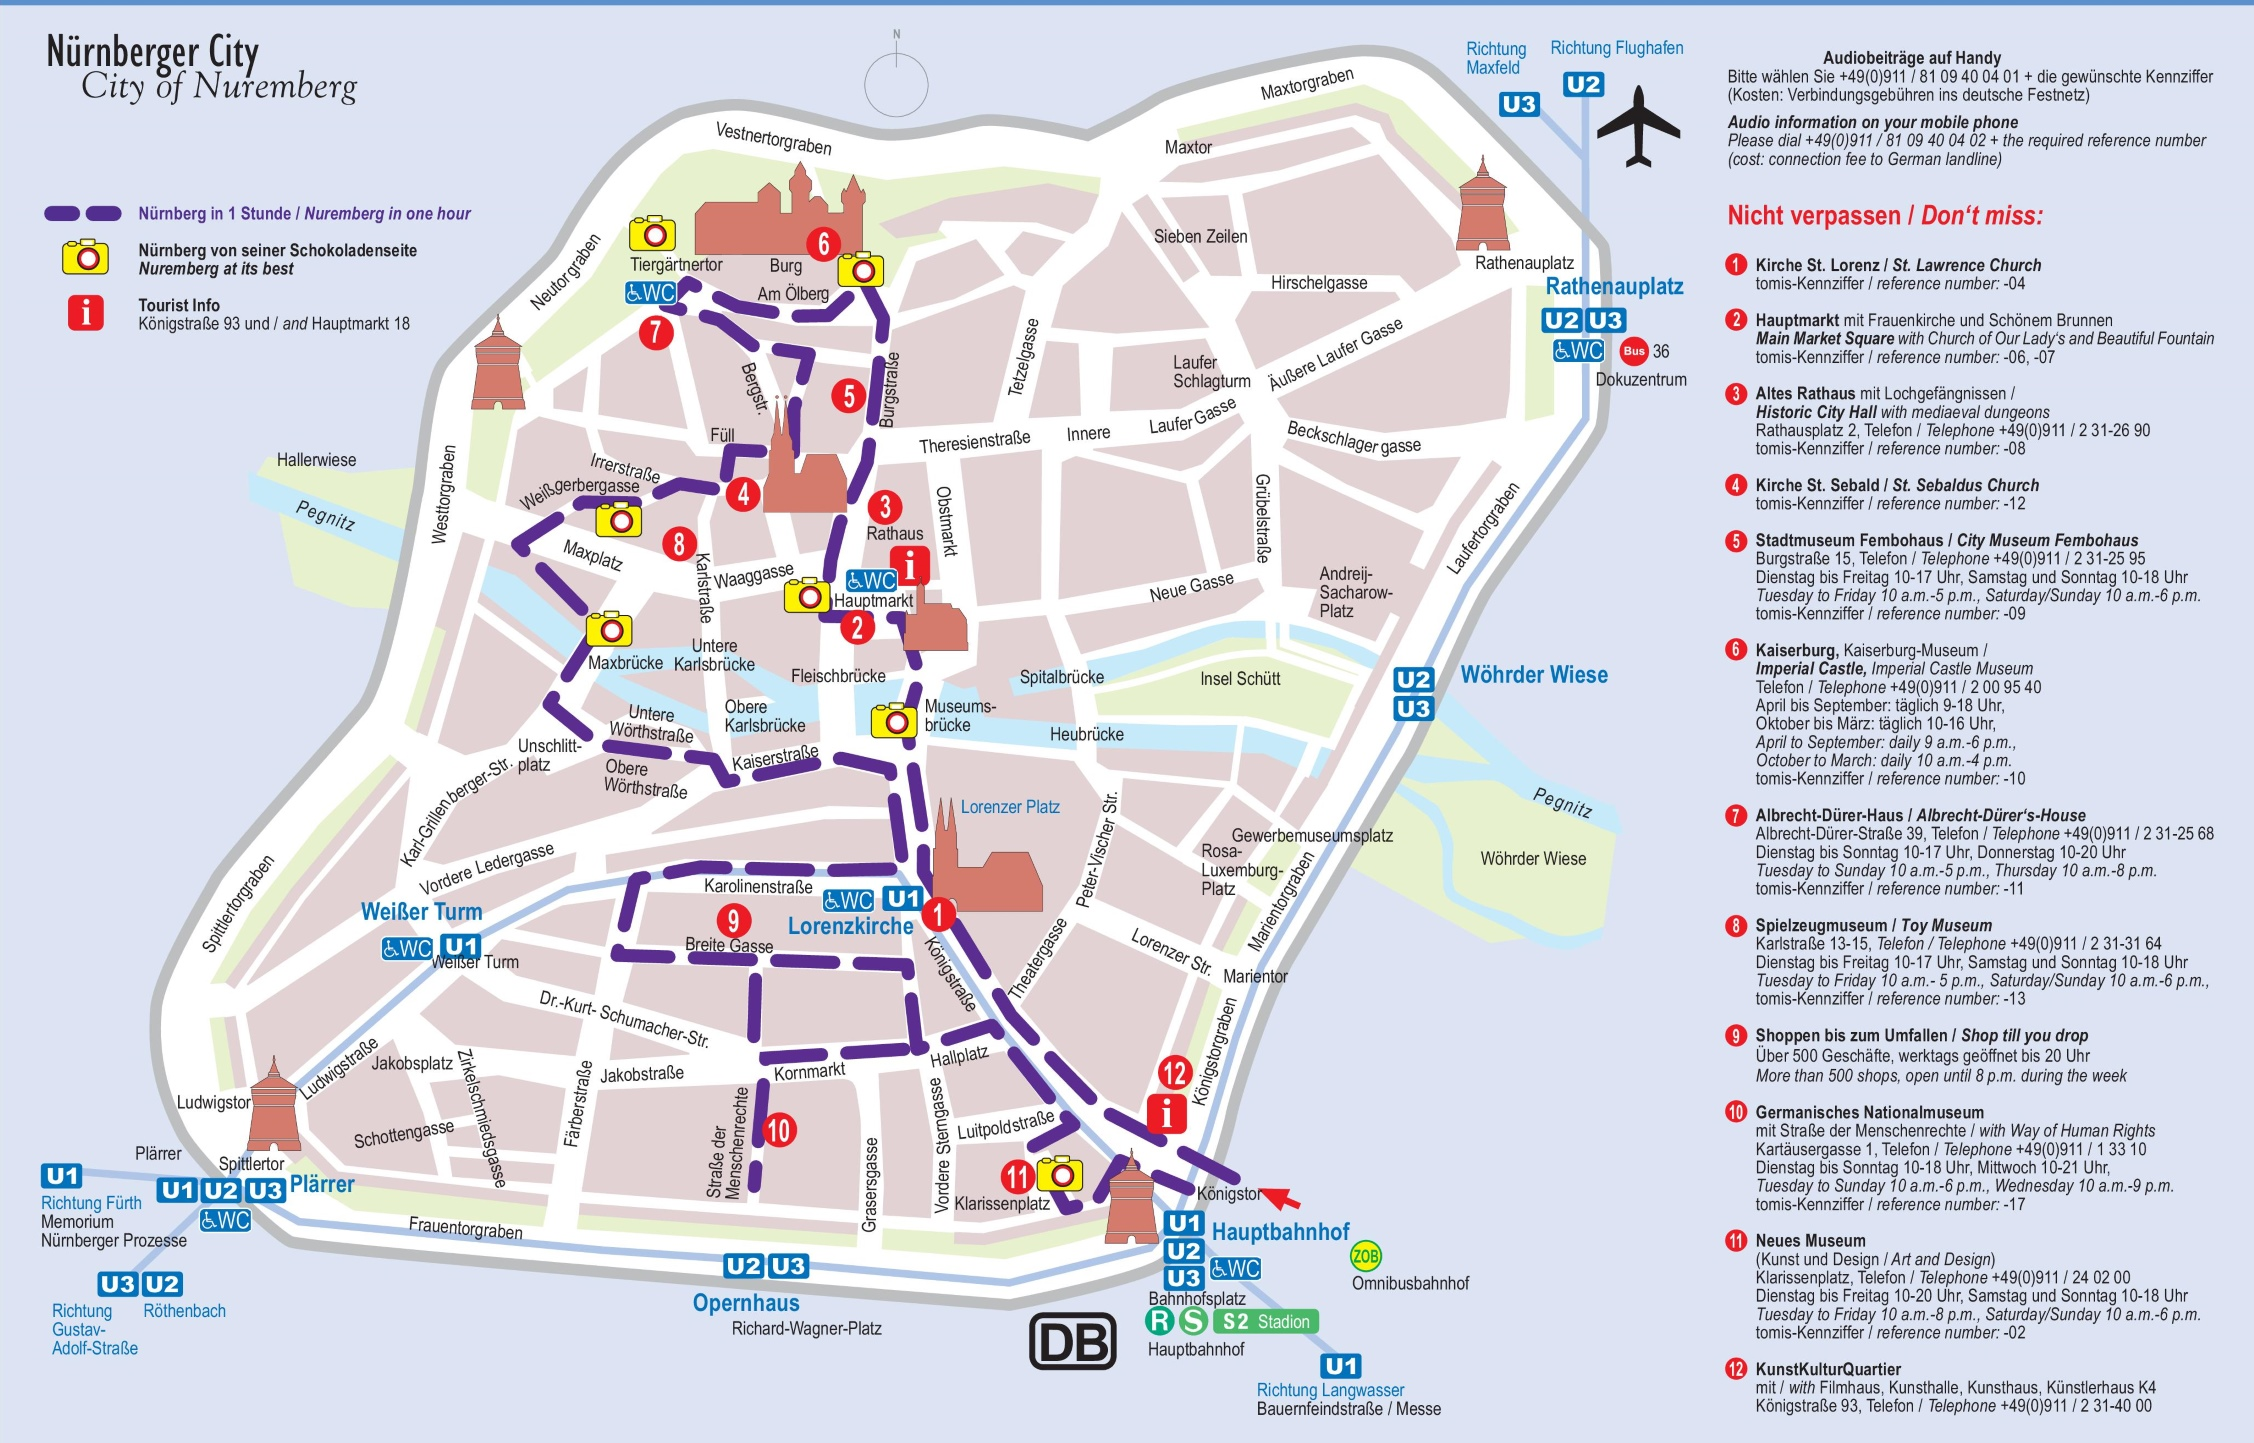 Nrnberg tourist attractions map